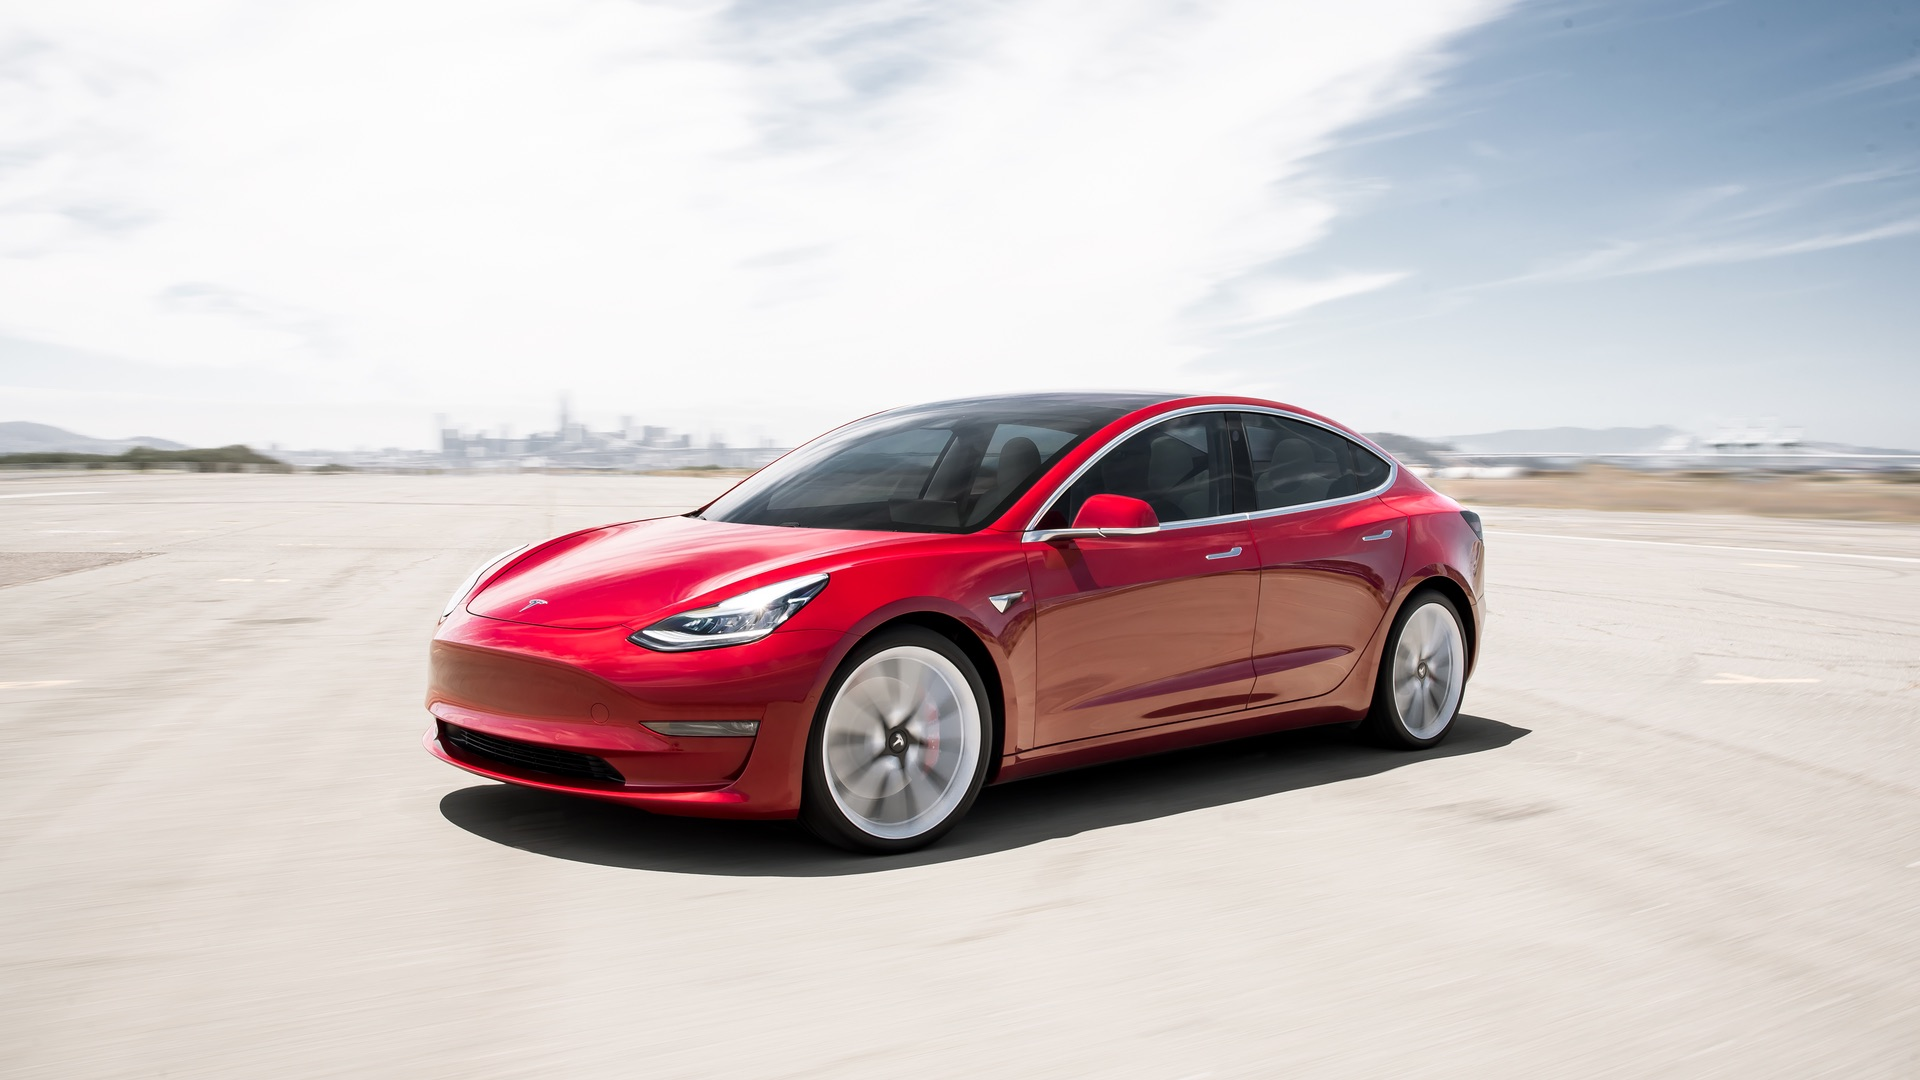 Tesla Model 3 review (2019): together in electric dreams